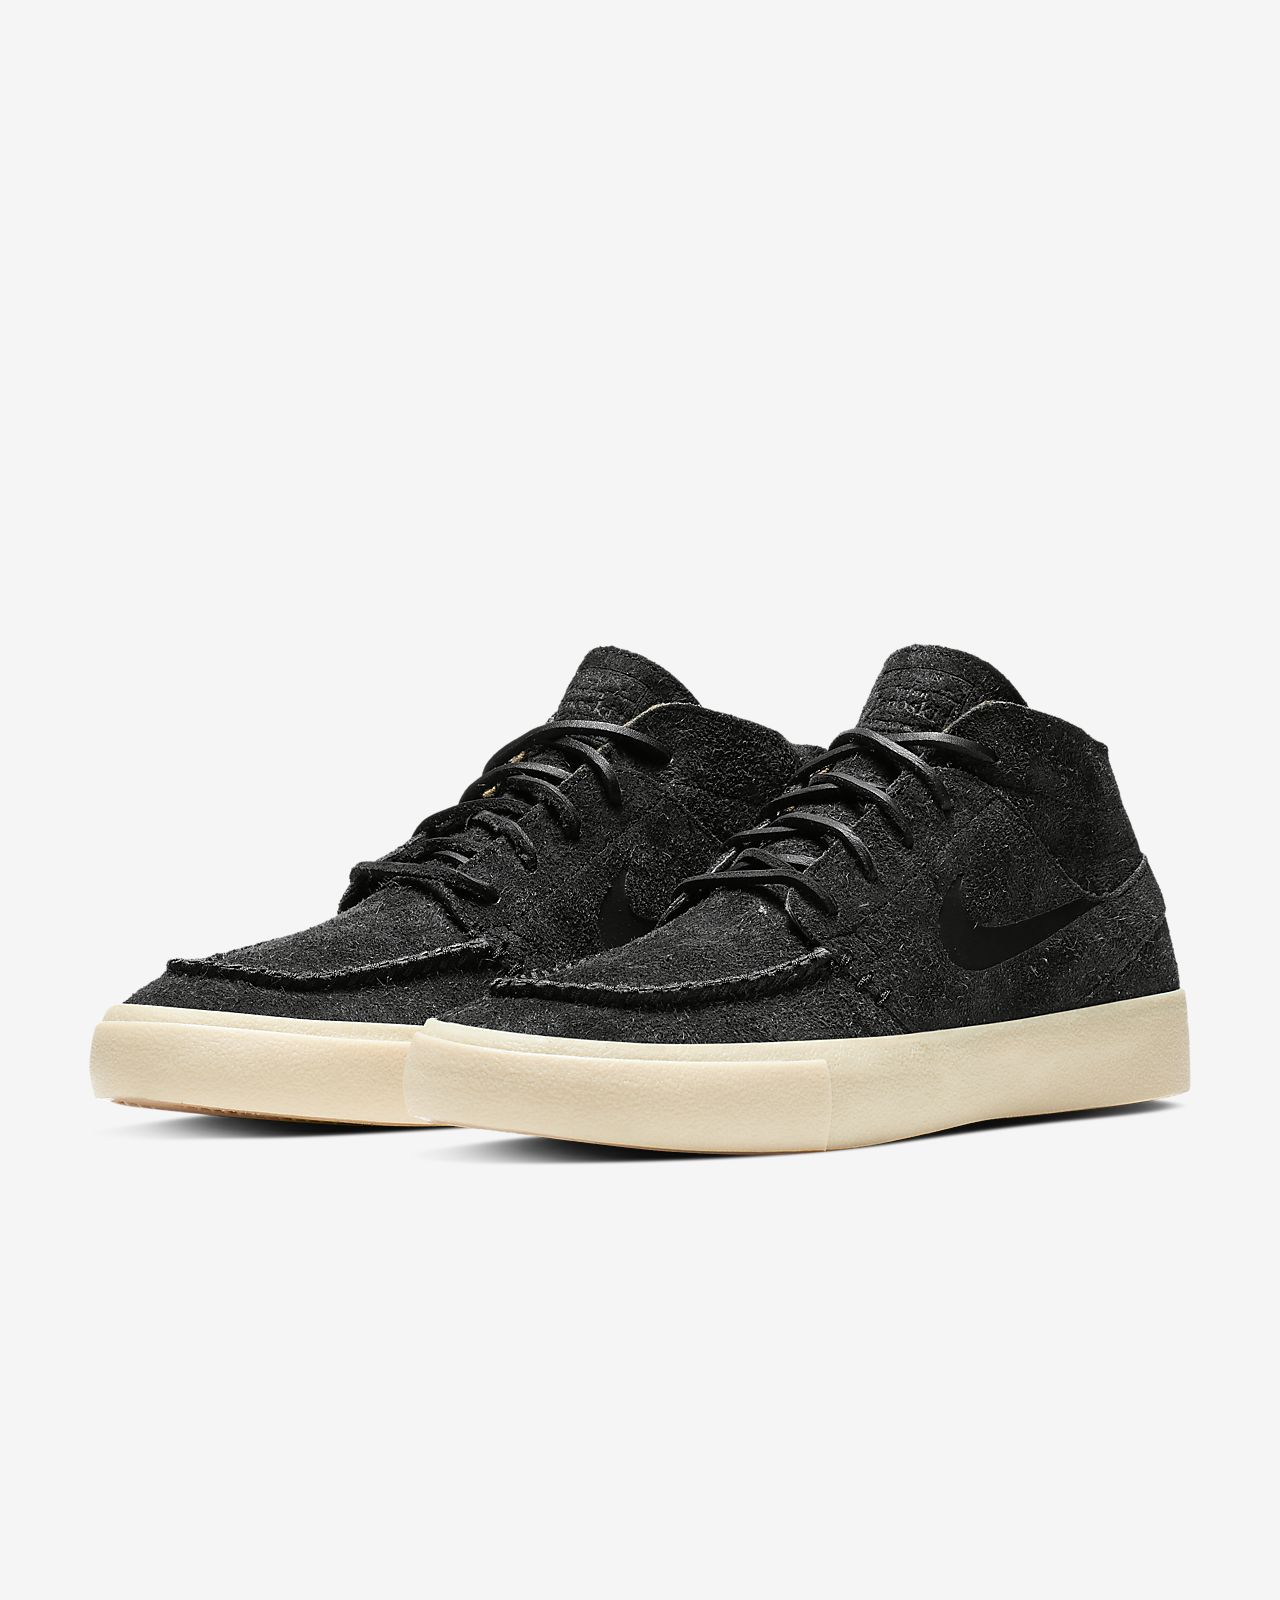 Stefan Mid Pour Homme Nike Chaussure De Skateboard Sb Janoski Zoom Crafted 45AjRL